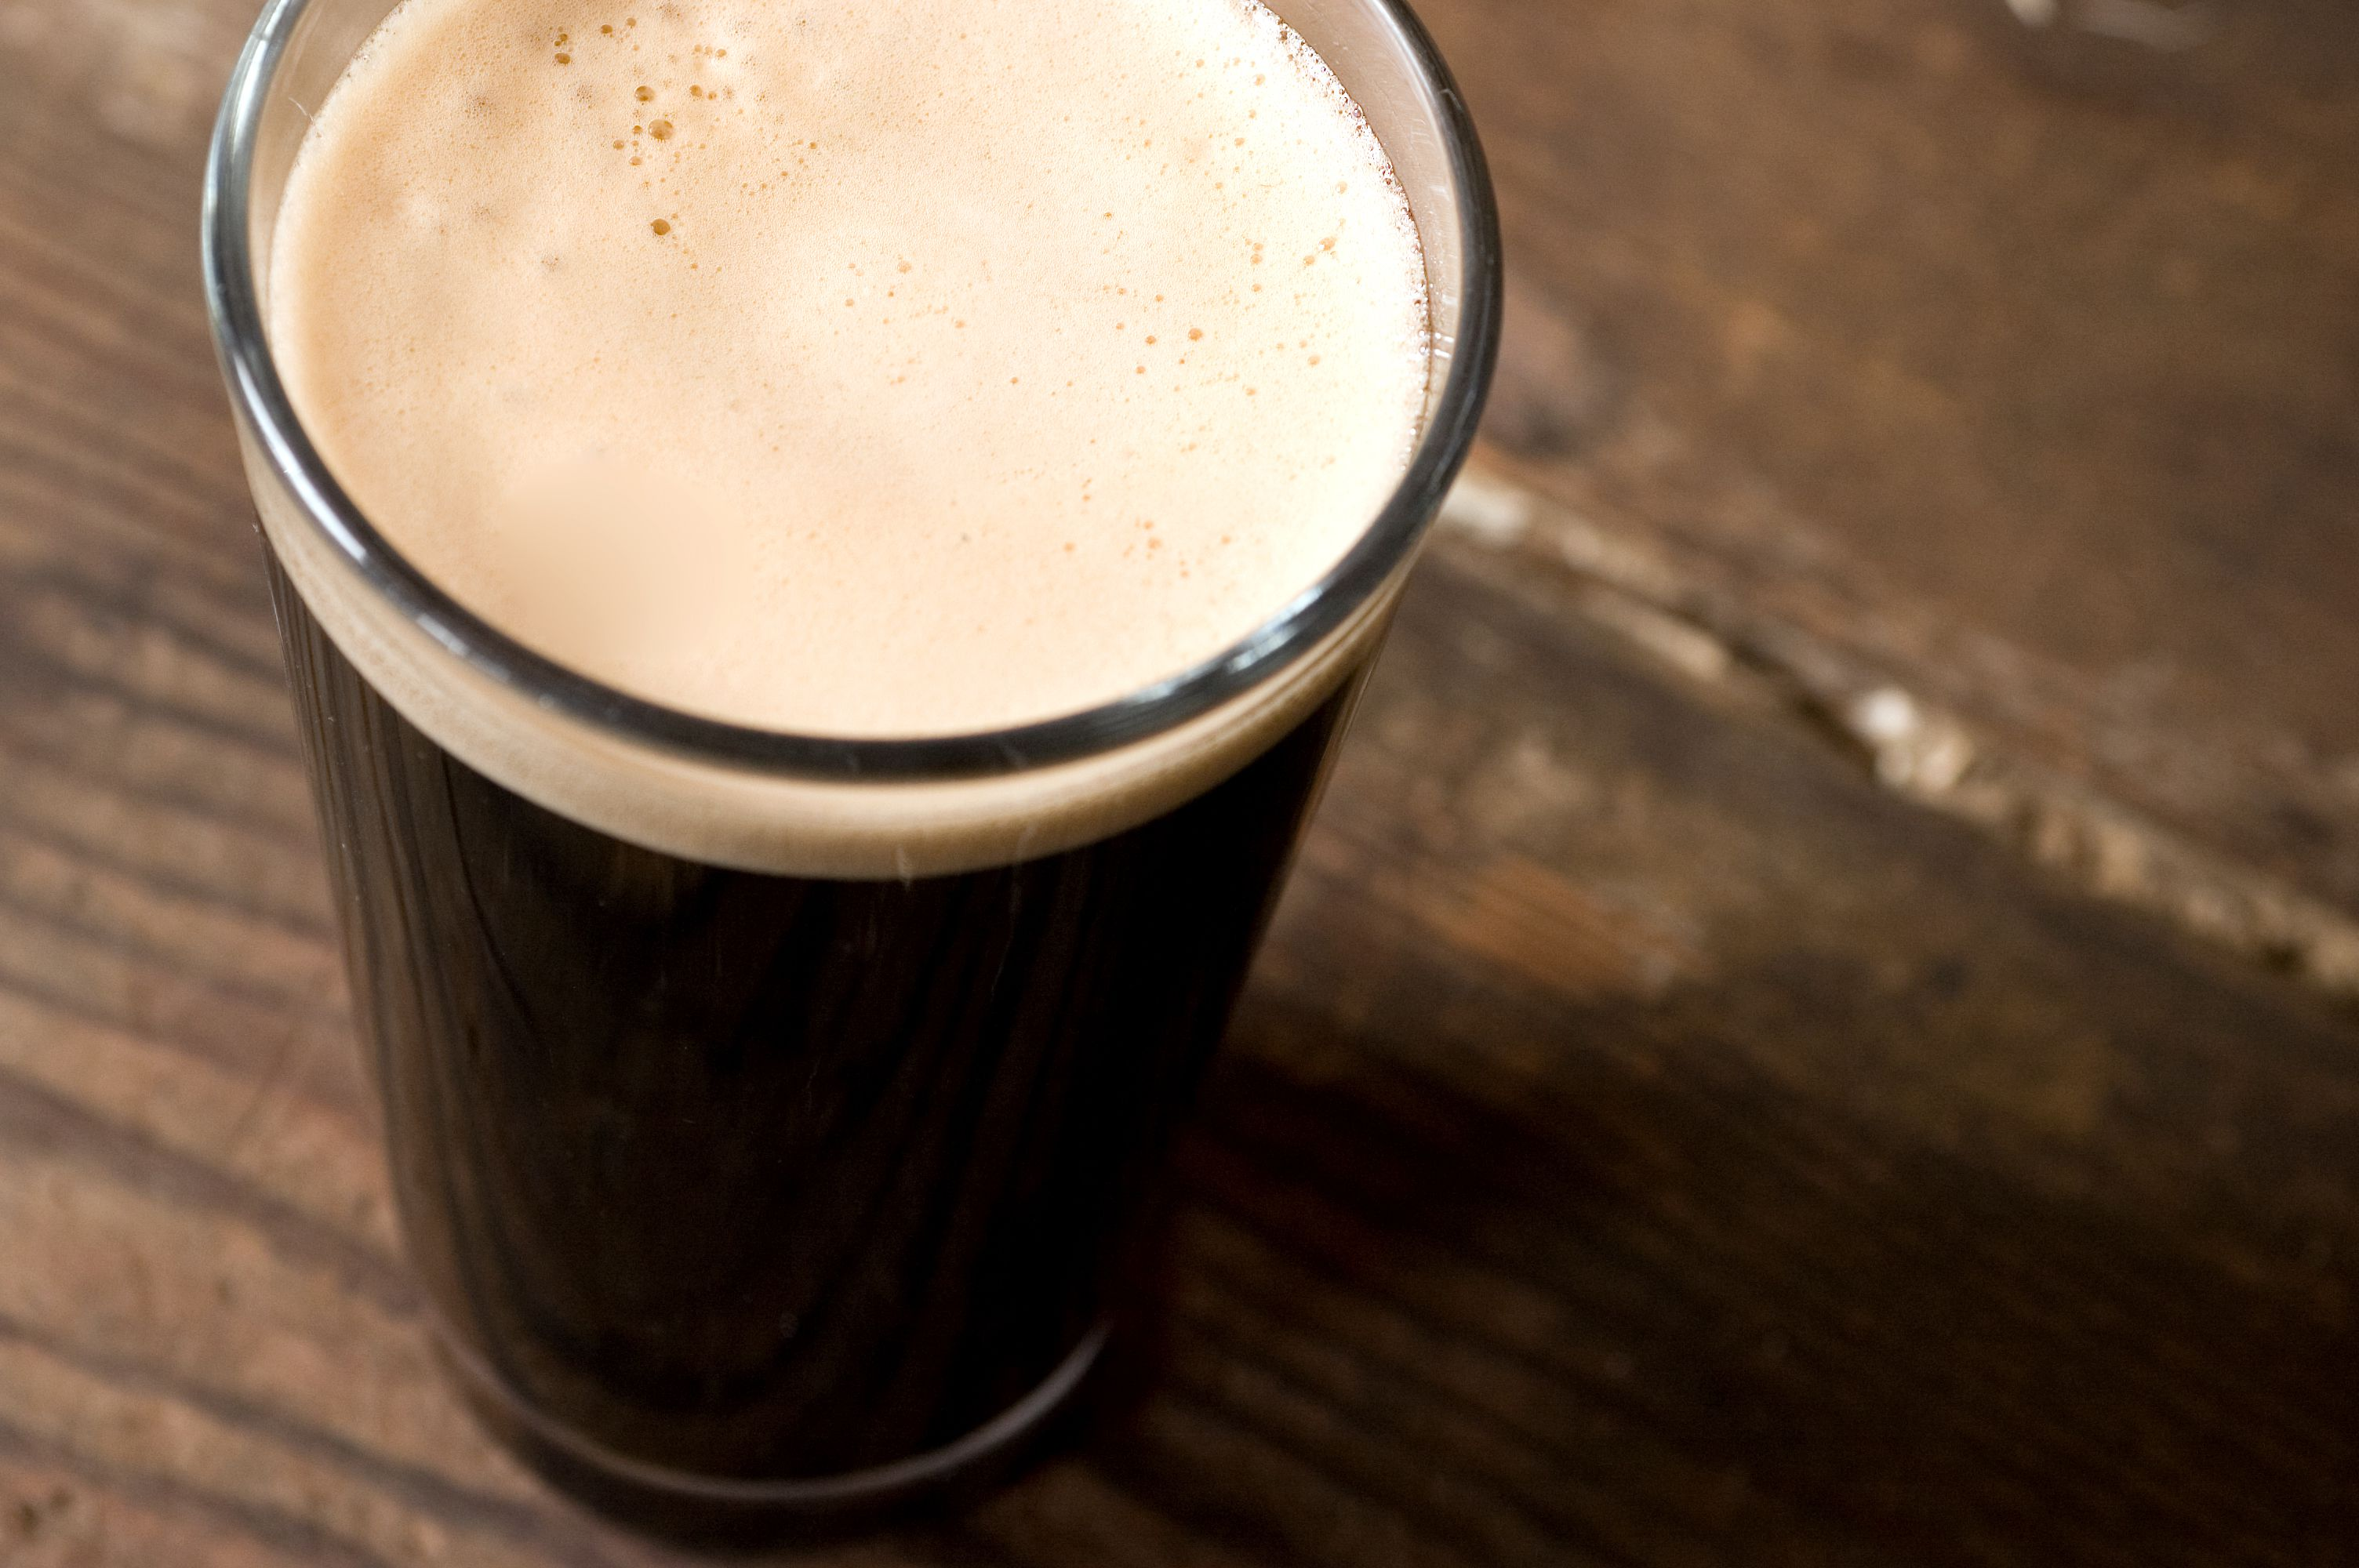 The 7 Best Stout Beers of 2021